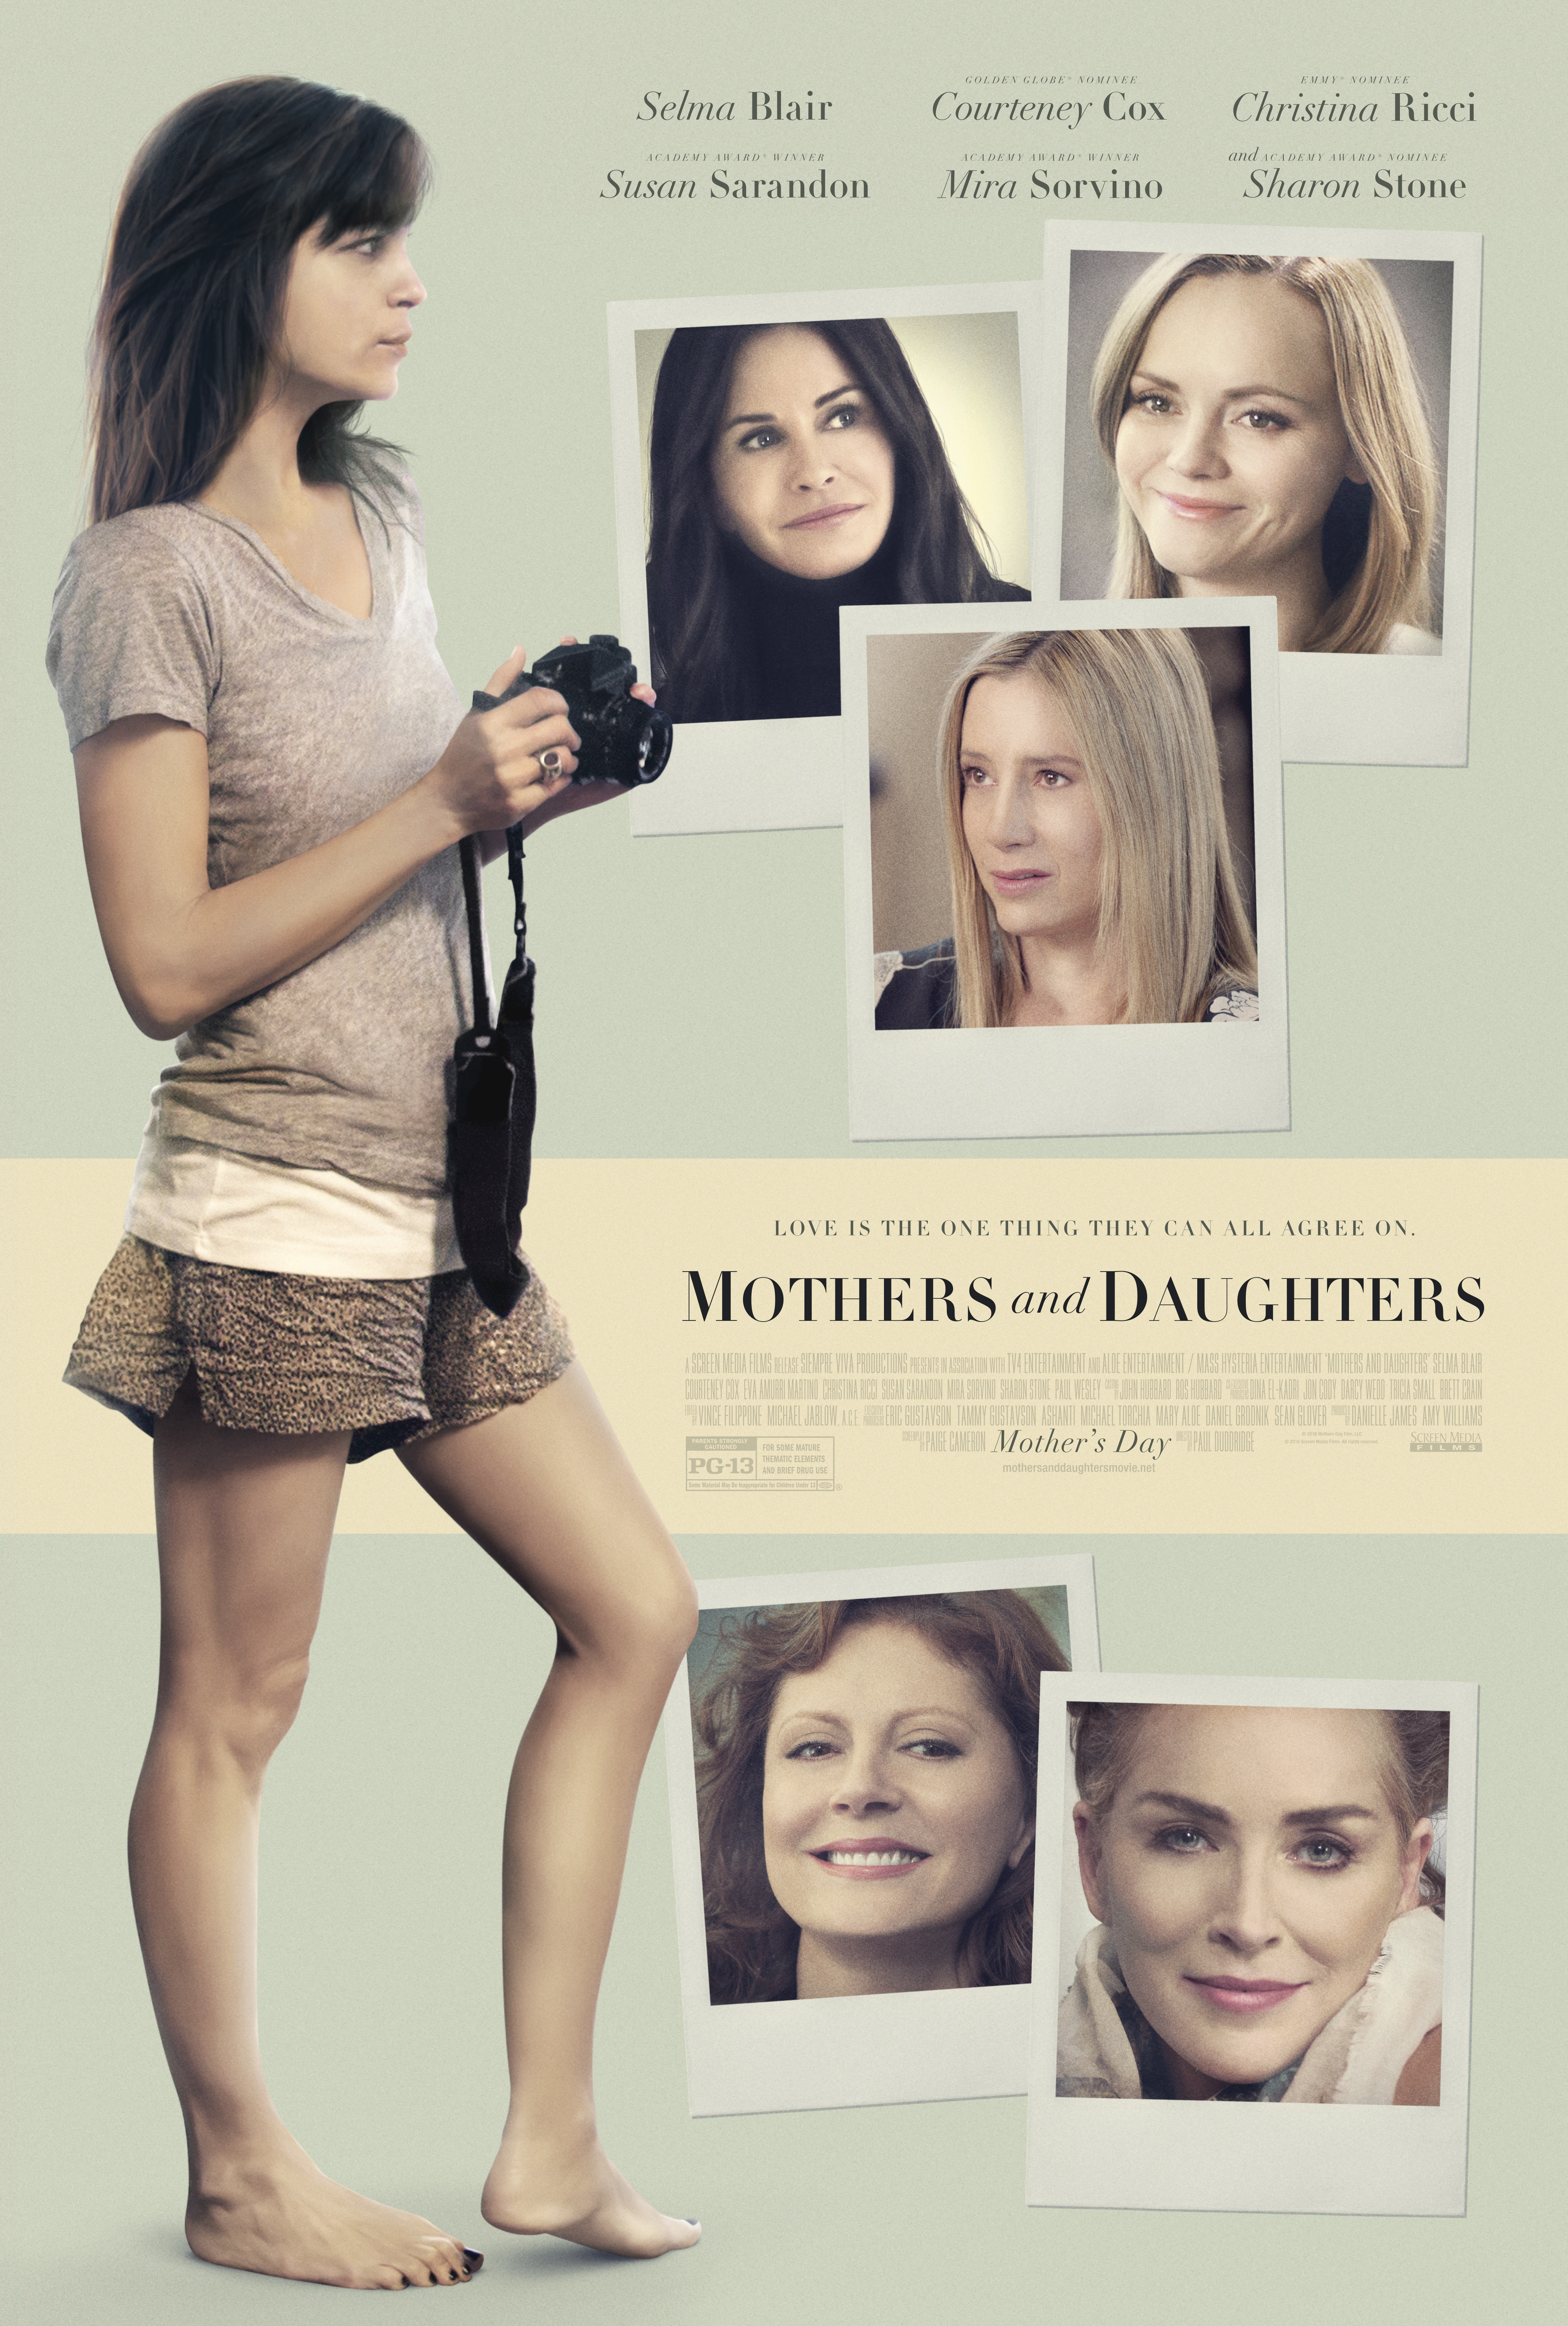 Mothers e daugthers trailer - 1 2